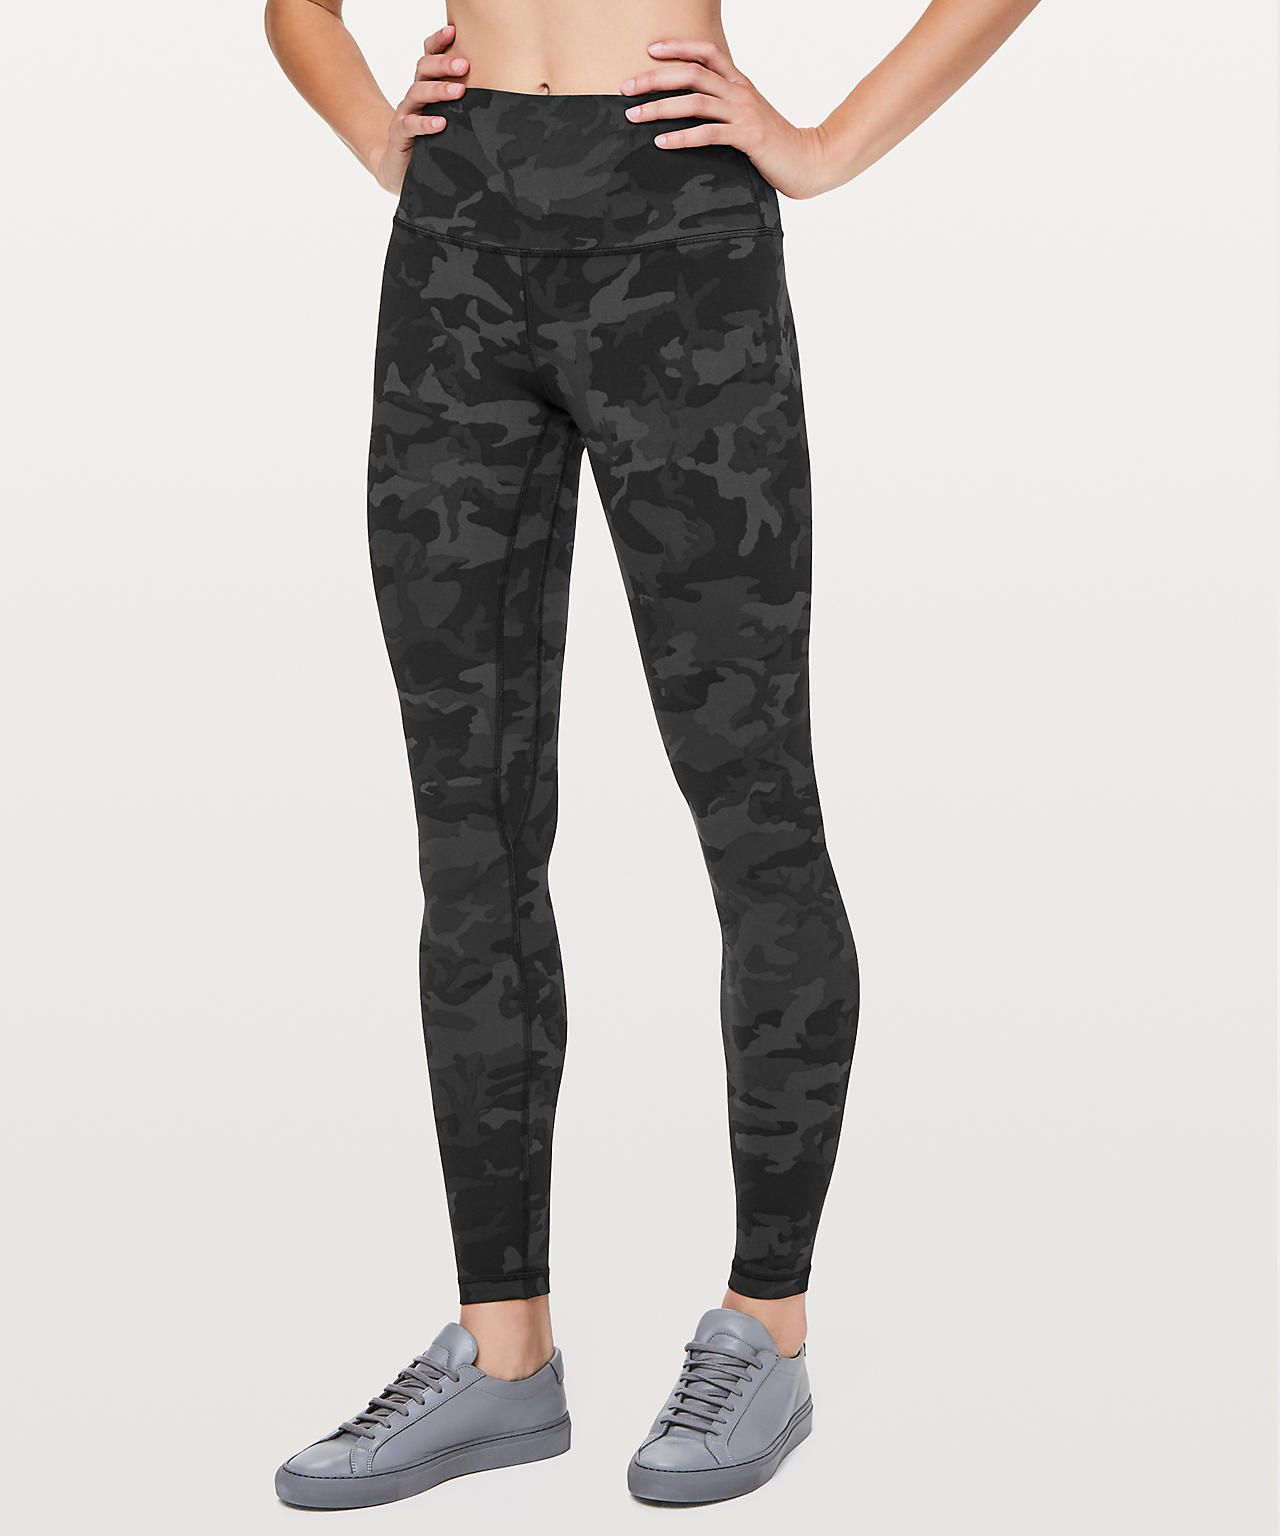 6e3f1ecb22 The Lululemon Upload | Style | Camo leggings outfit, Camo leggings ...